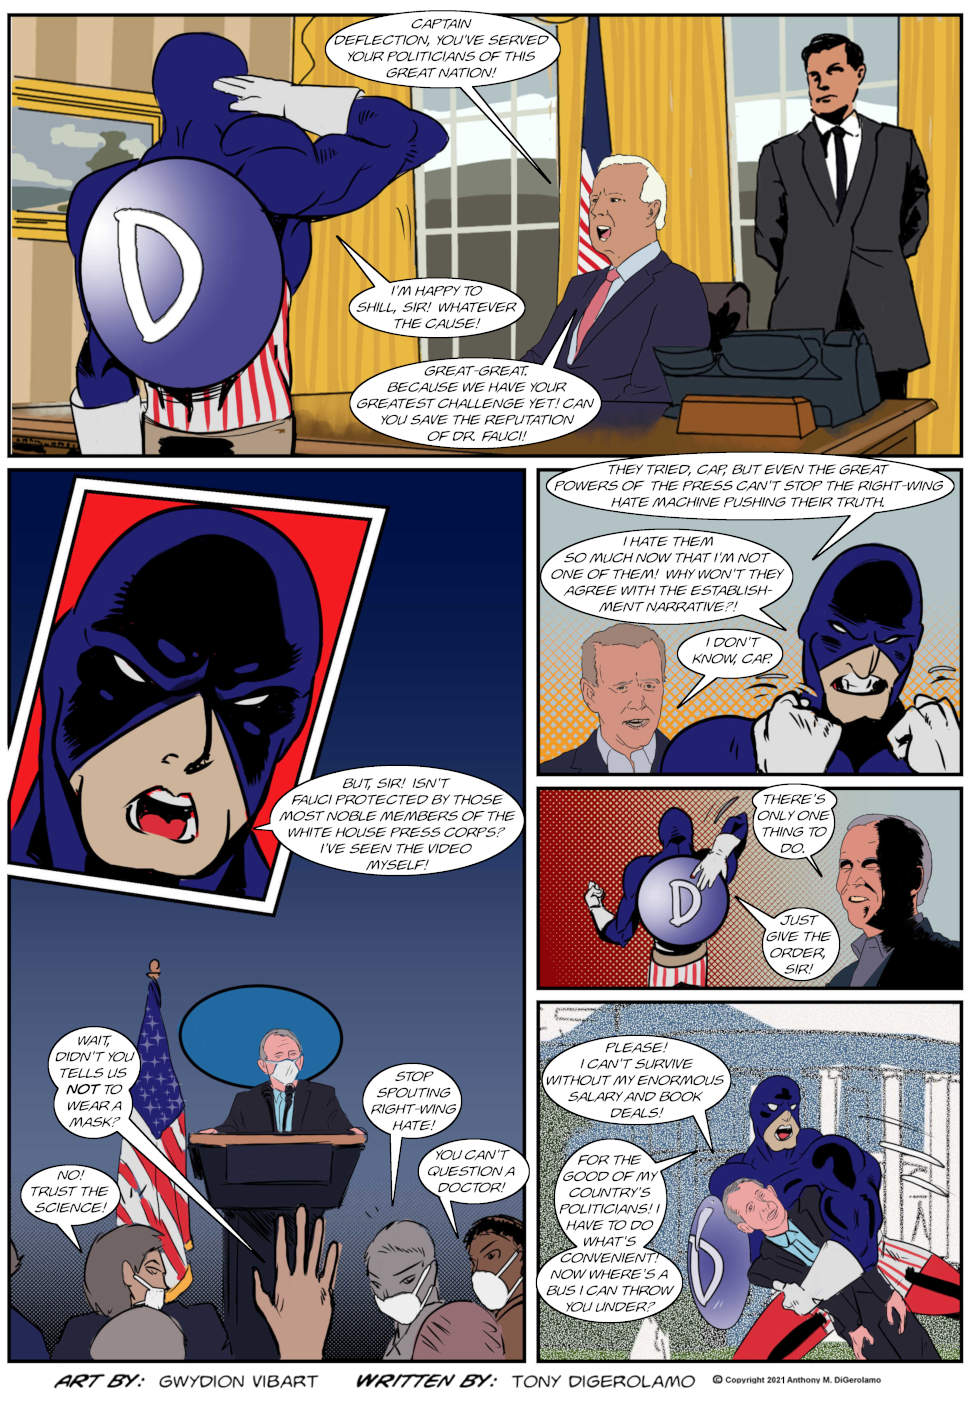 The Antiwar Comic: The War Against Responsibility